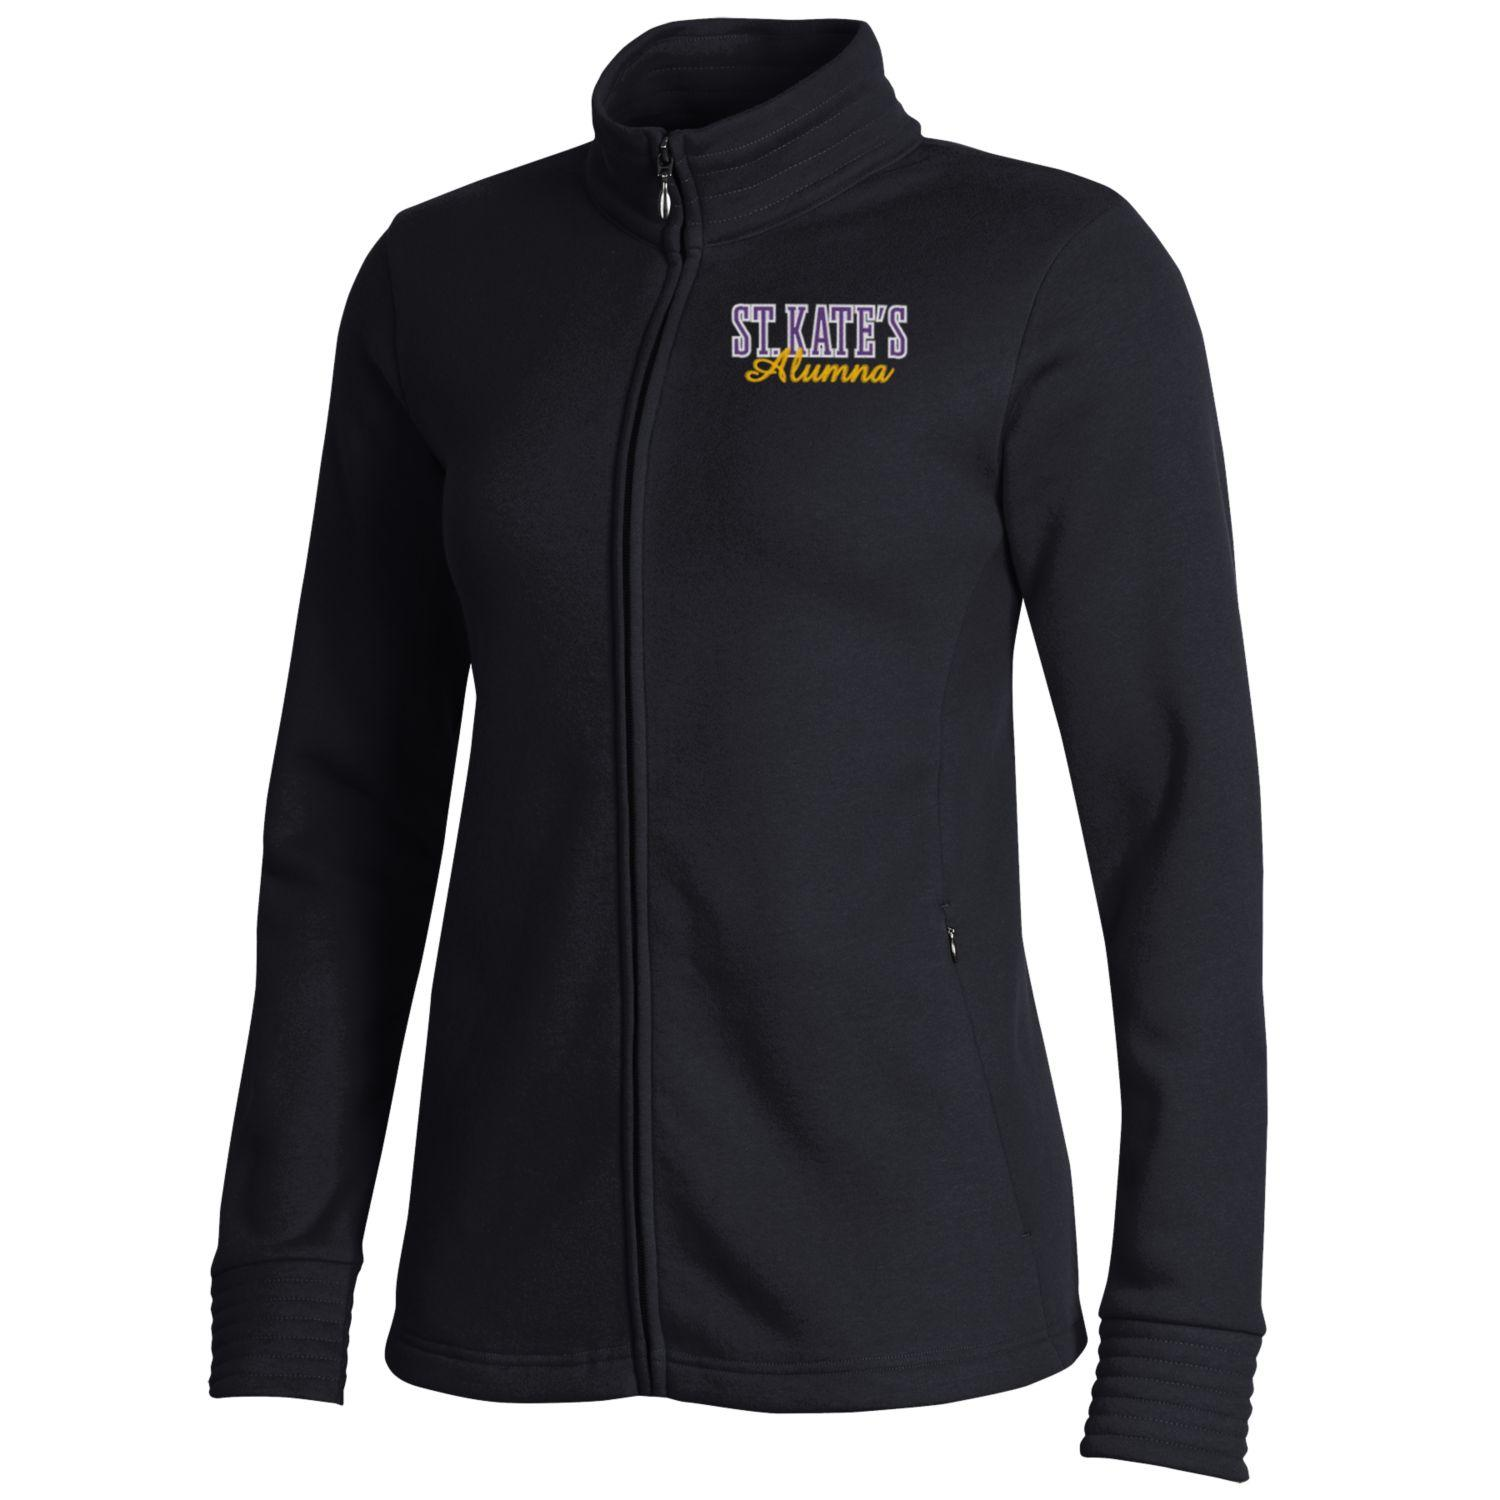 Image For Alumna full zip sweatshirt